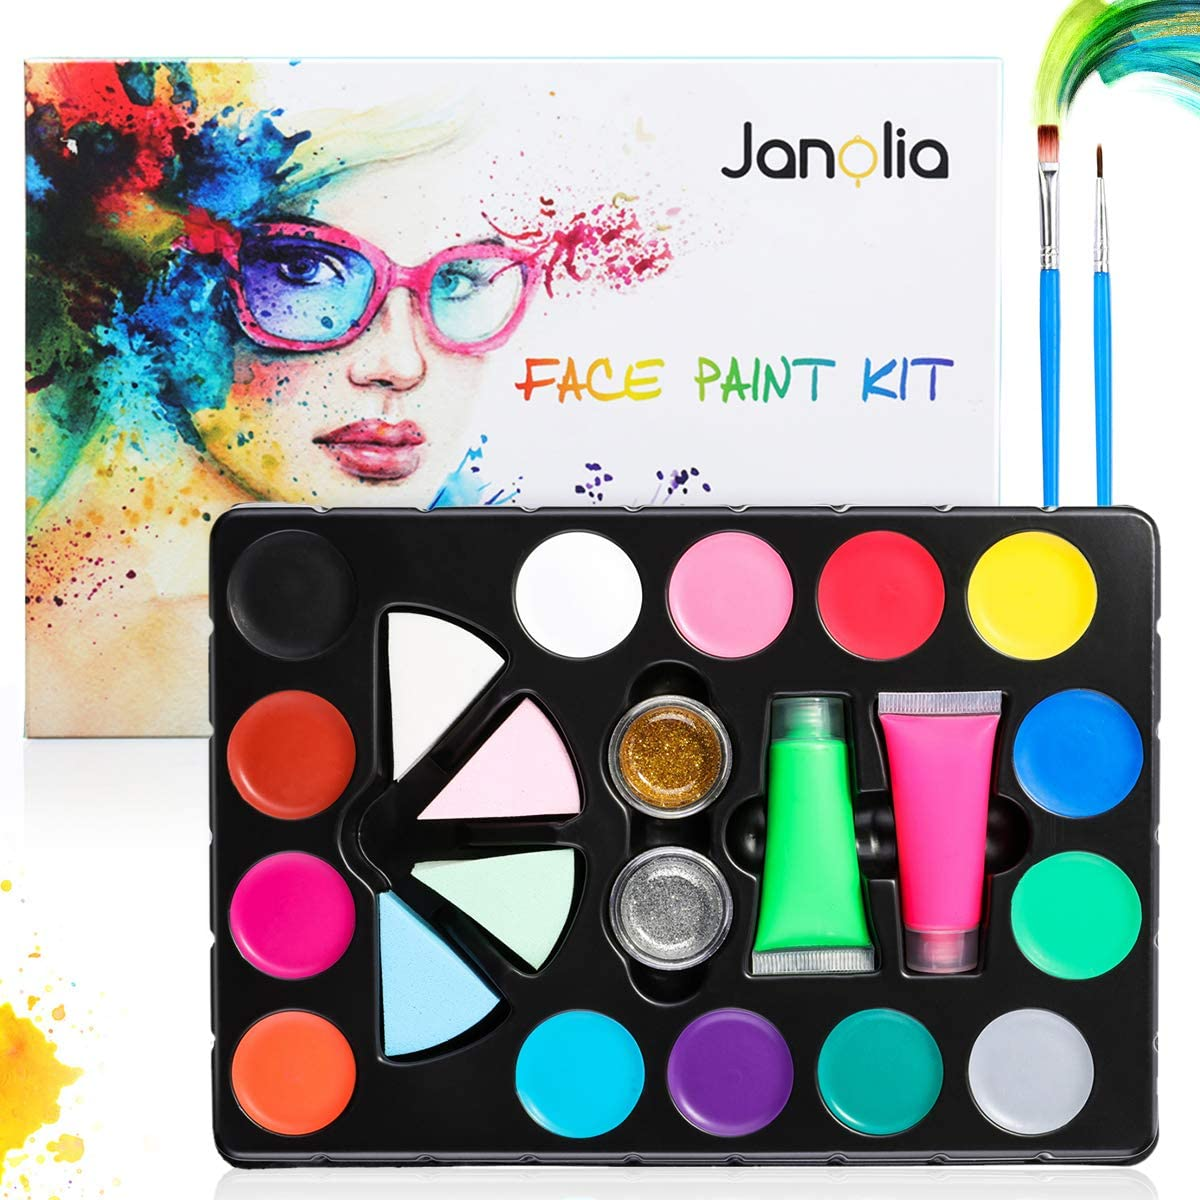 Janolia Face Limited price sale Painting Kits for Kids Body Adults Paint kit Ultra-Cheap Deals